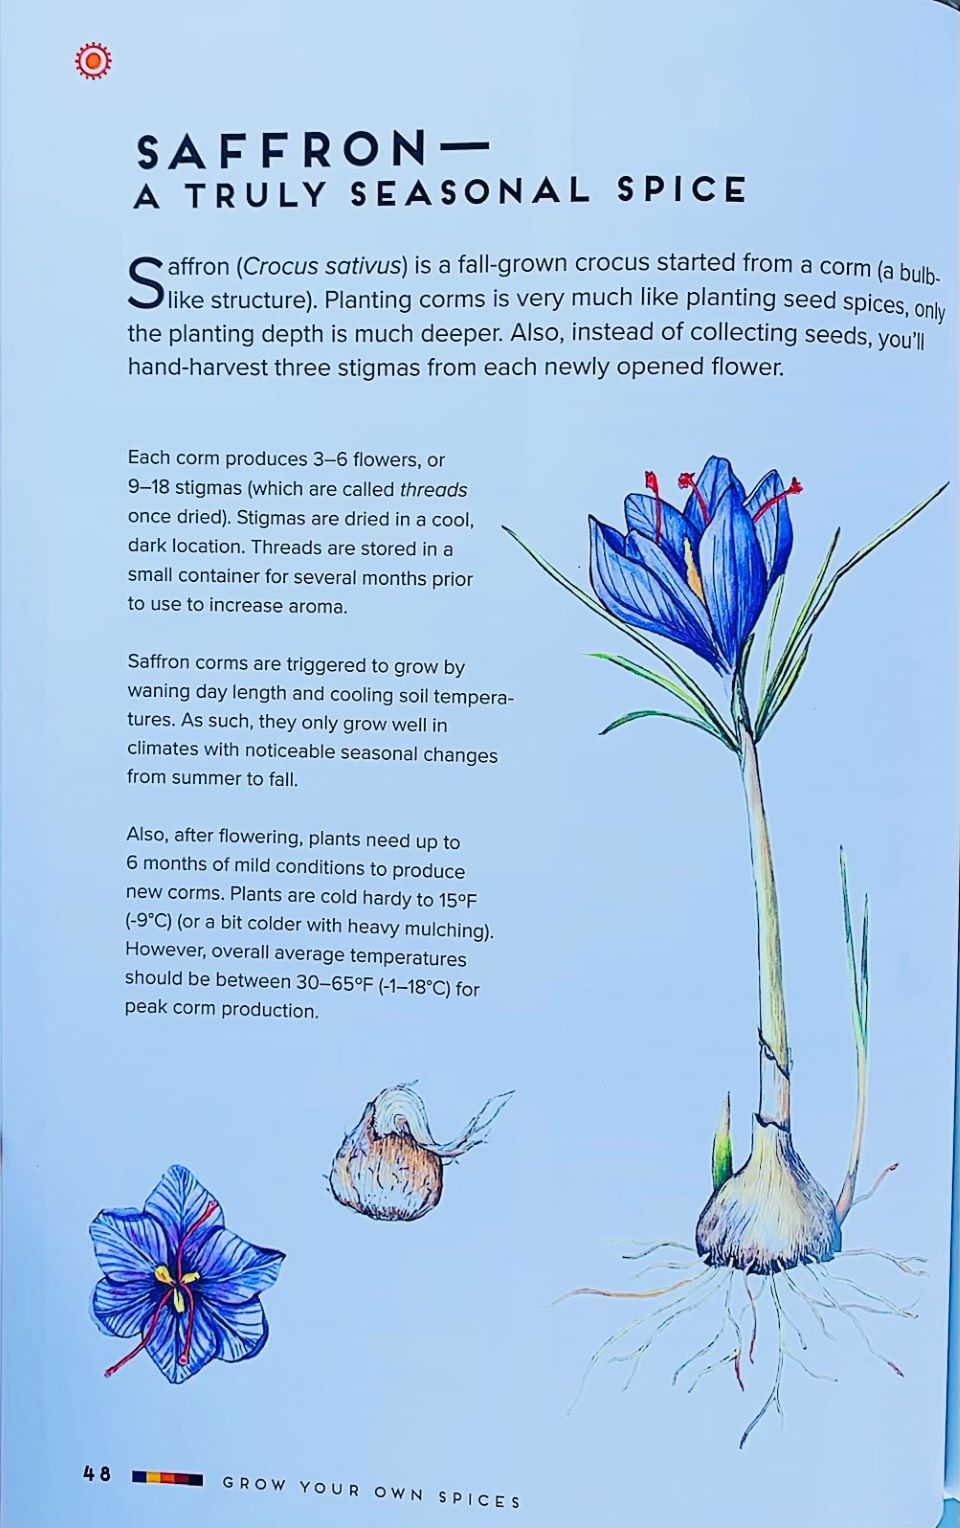 How to grow Saffron page in book